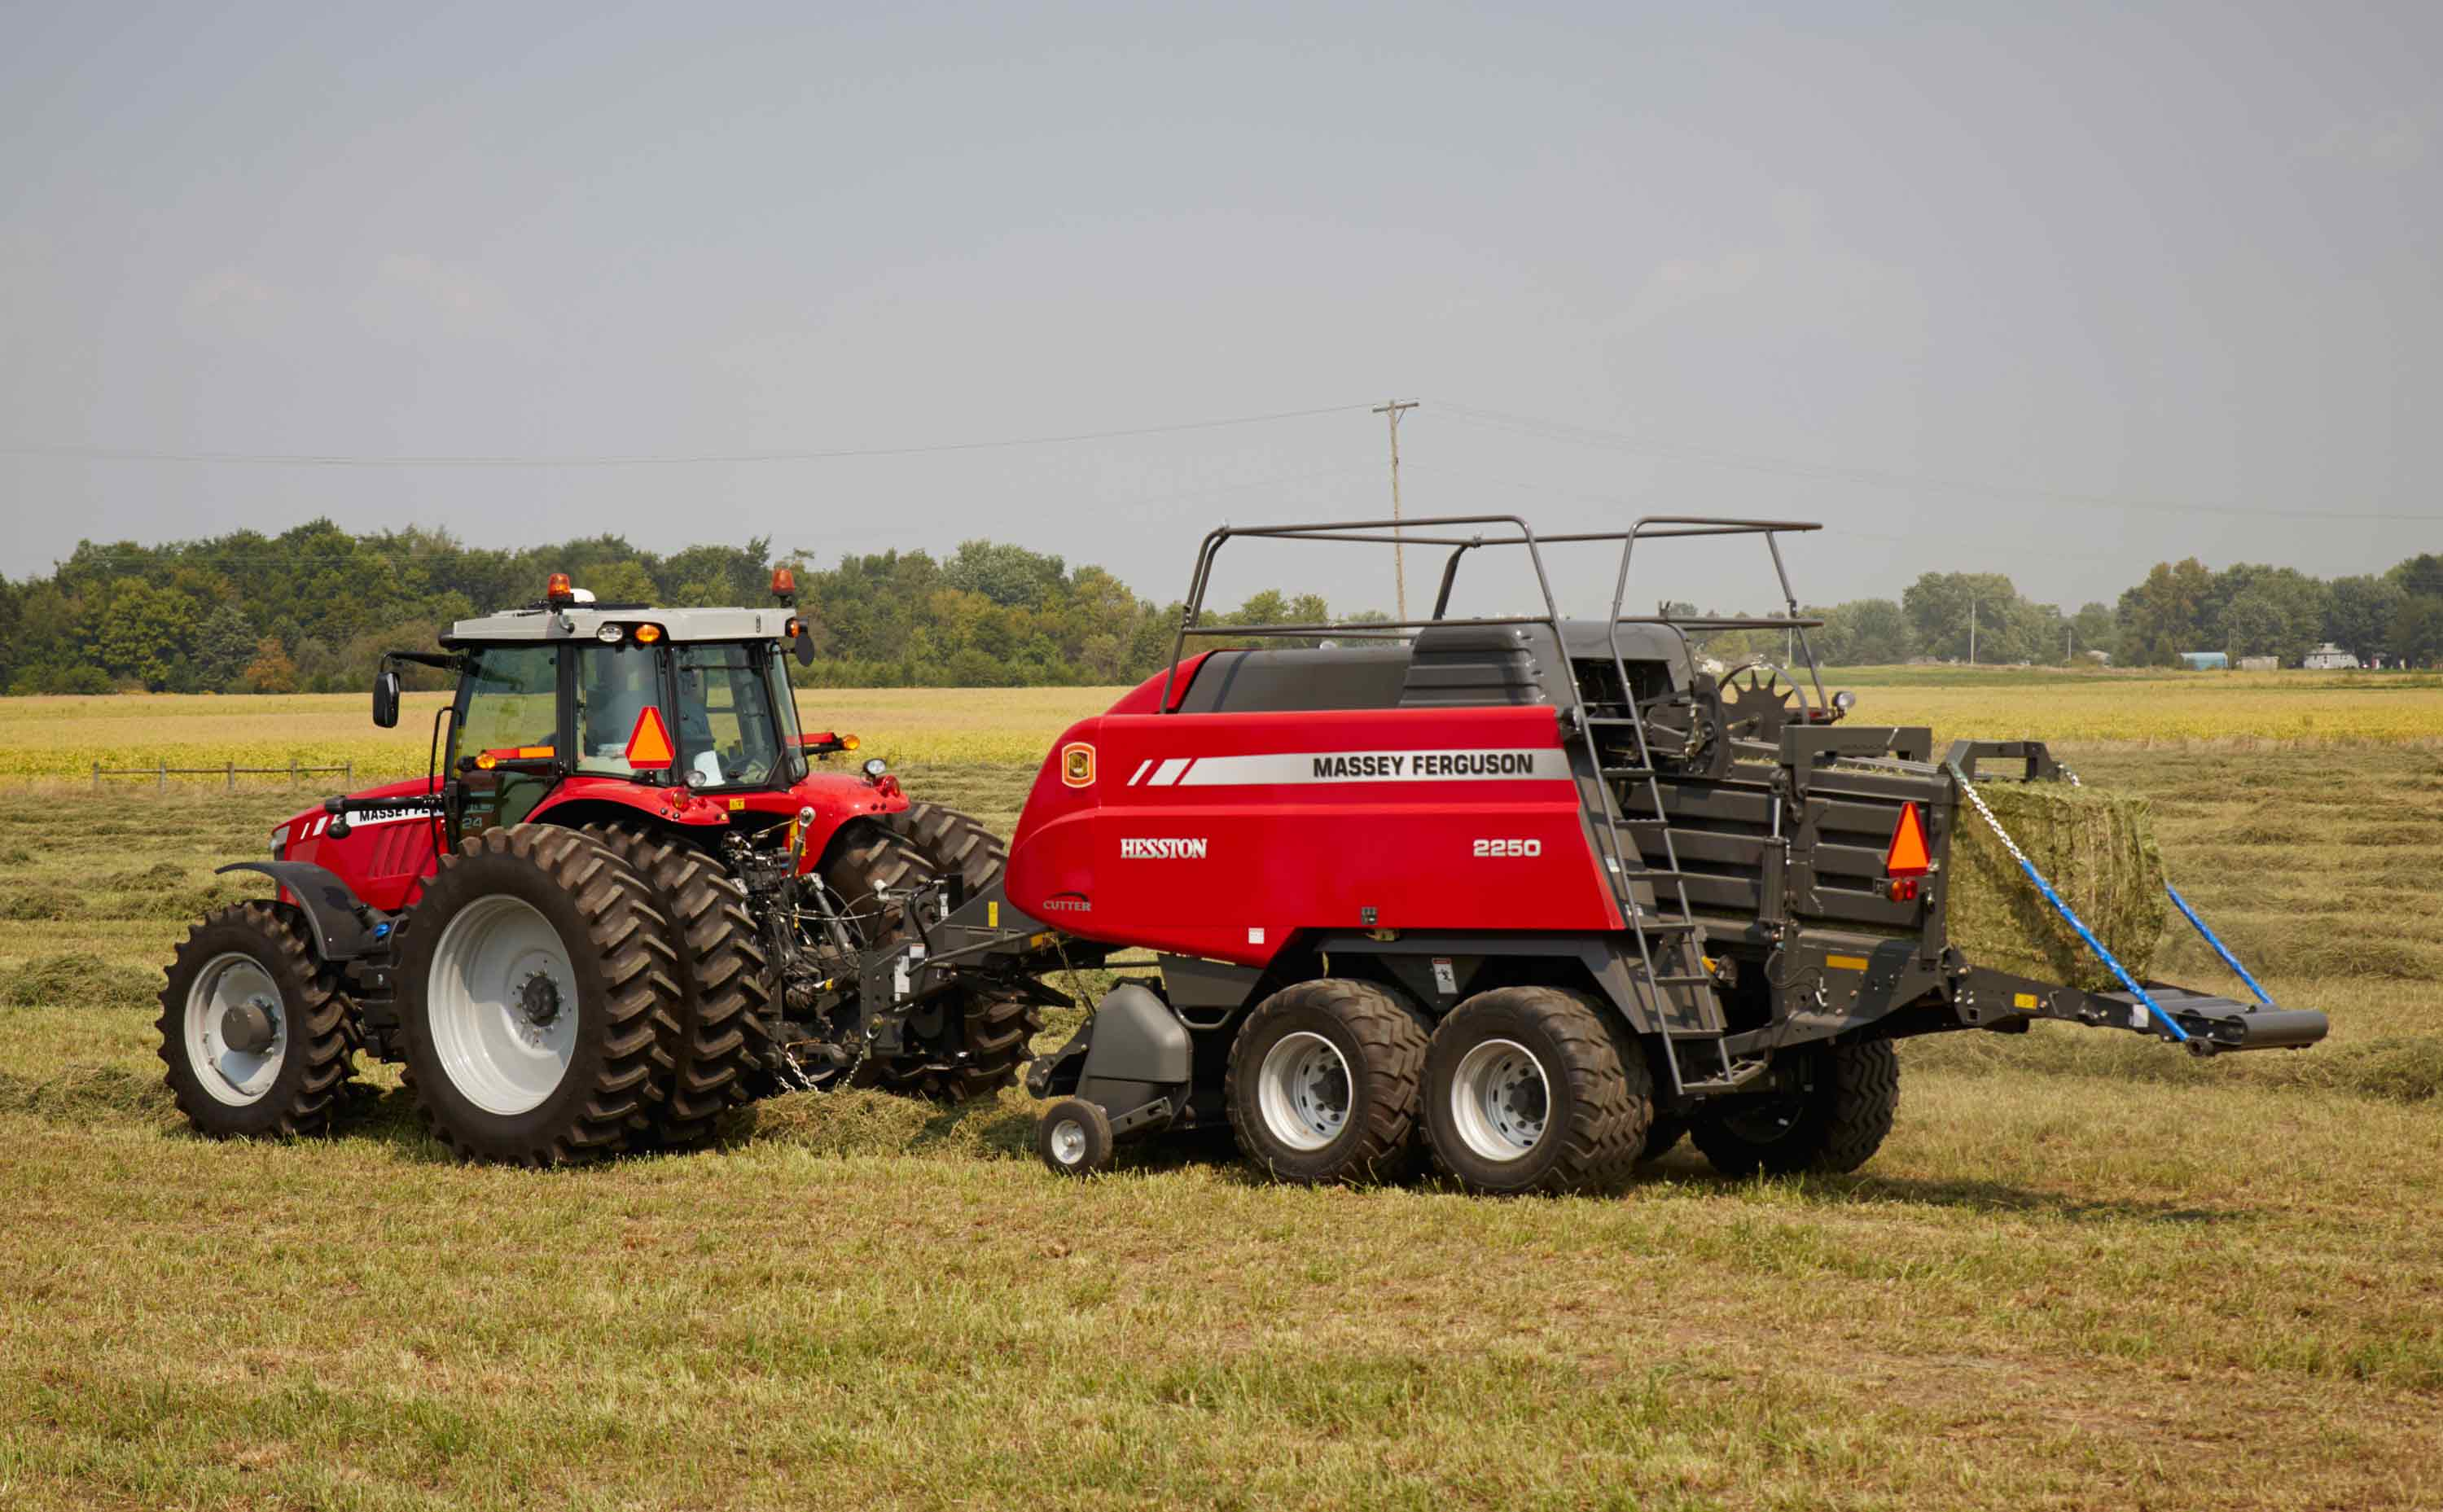 New and used Hesston by Massey Ferguson big square balers for sale at Hanlon Ag Centre in Lethbridge, Alberta, Canada. View our selection of 3x4 and 4x4 big square balers. We carry Massey Ferguson 2270, 2290 and 2270XD cutter balers. We are leading supplier of hay and forage equipment to the region.